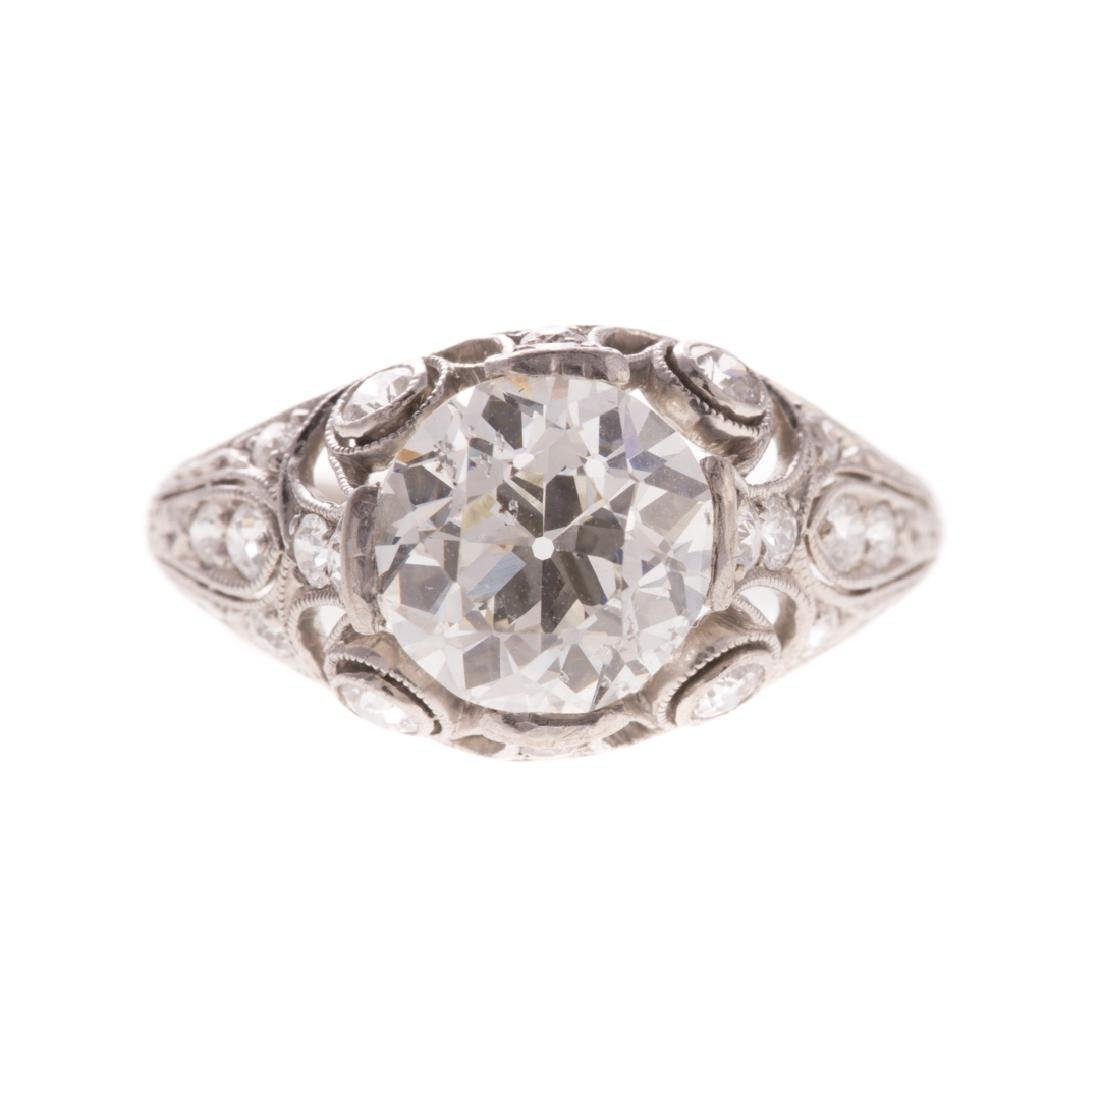 A Lady's 1.75 ct. Round Diamond Ring in Platinum